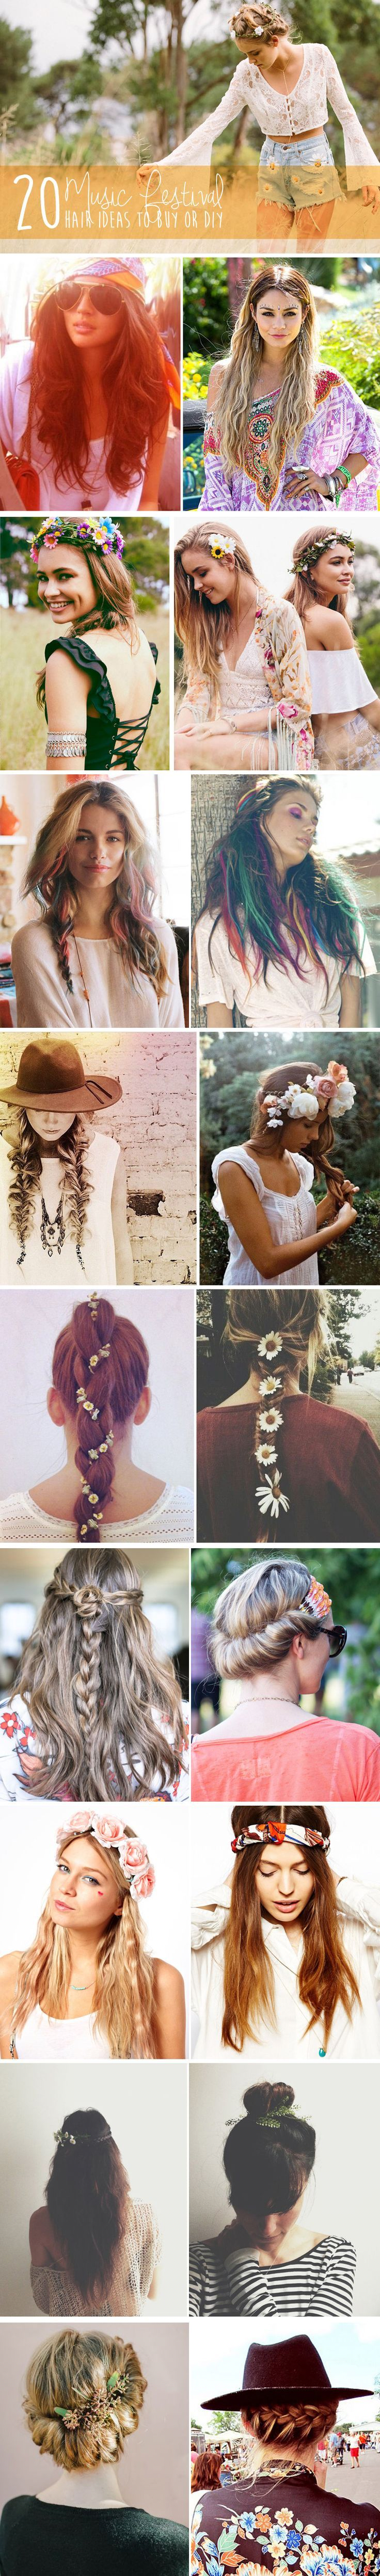 20 summer music festival hair, fashion, and style ideas to buy and diy ; perfect for coachella!